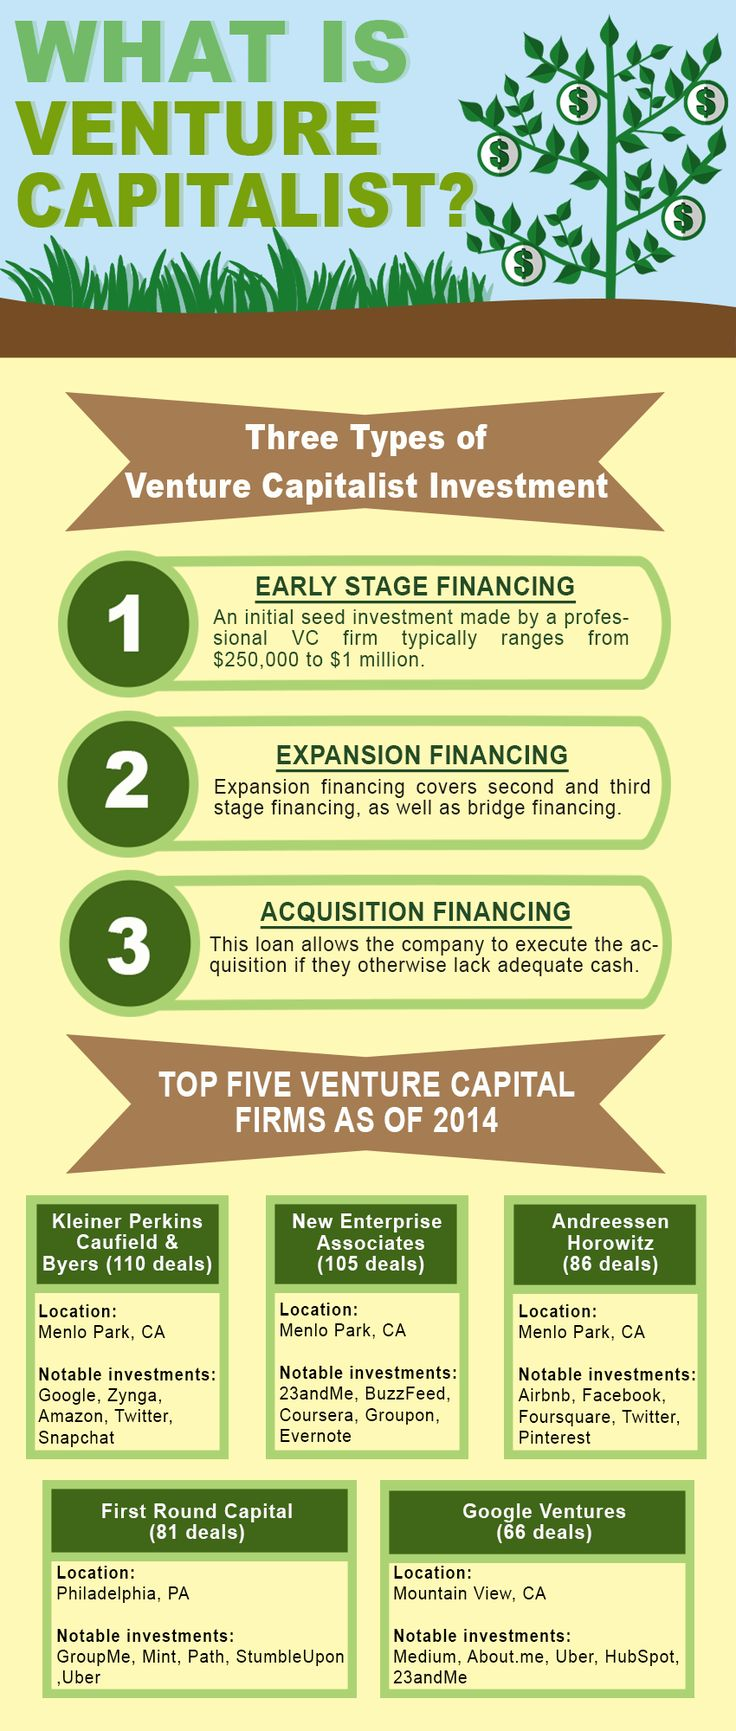 For those considering getting funding for their startups, one option is venture capital. Did you know there are three types of venture capitalist investment?